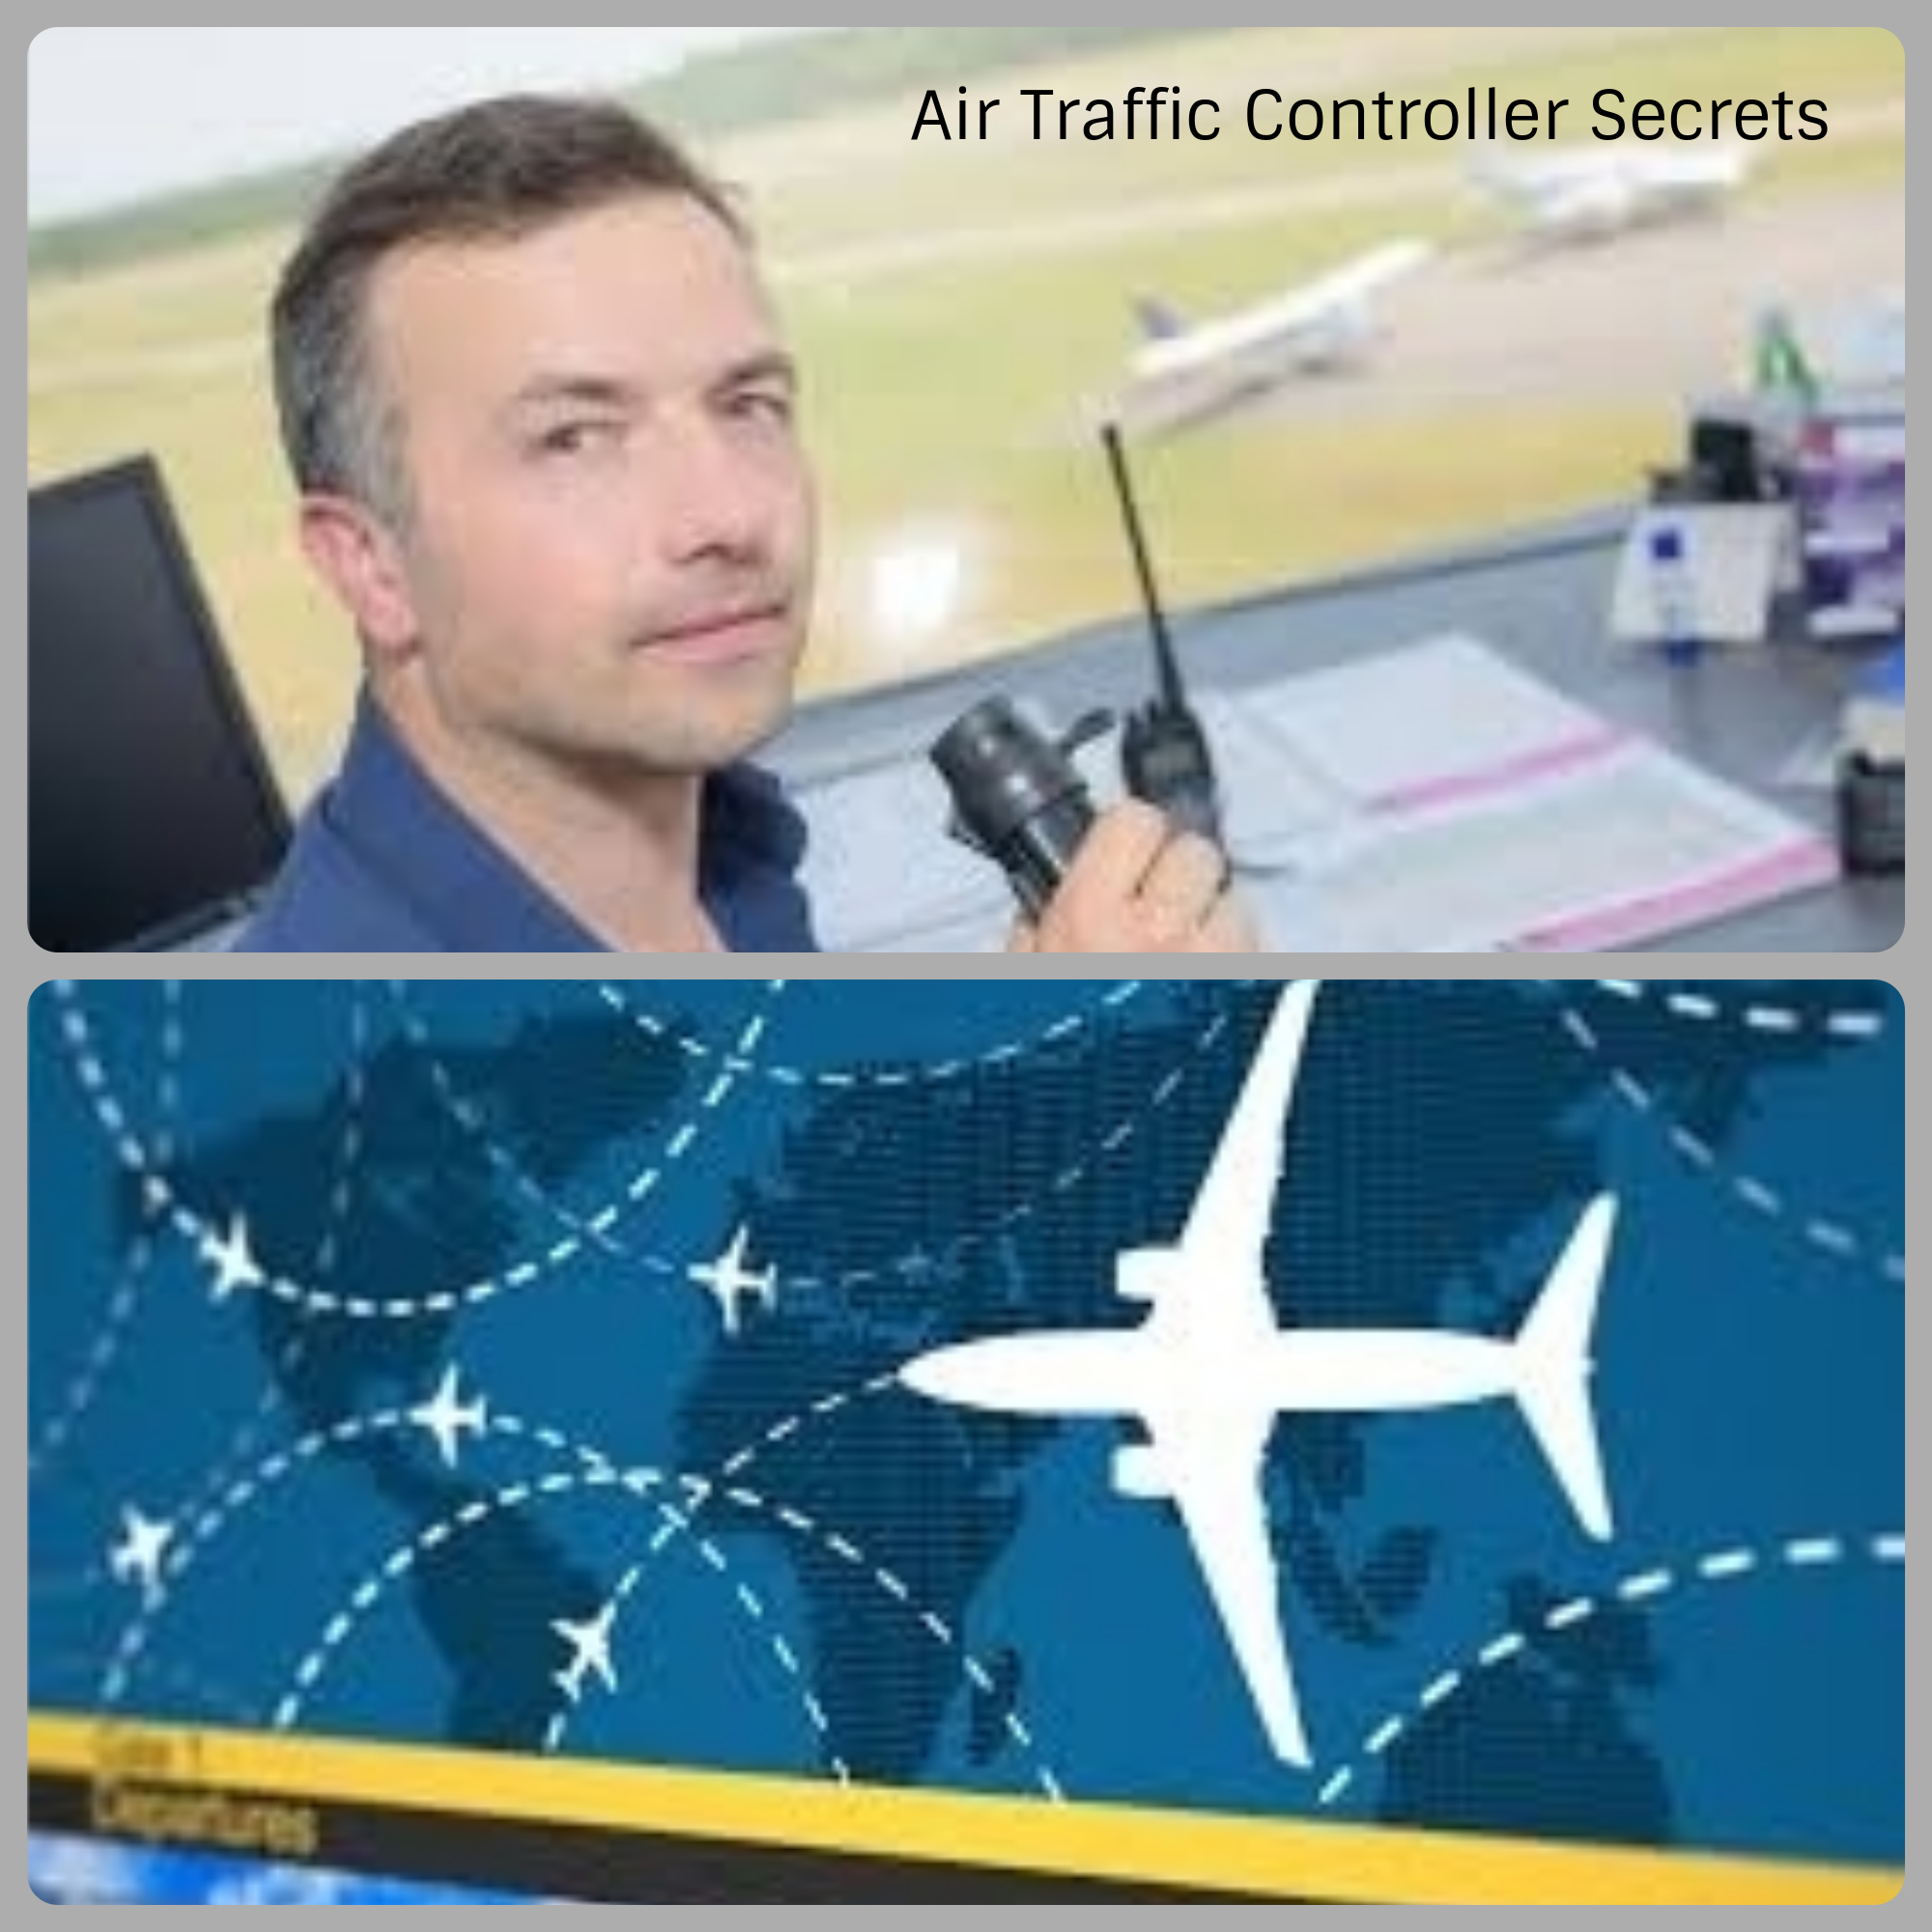 12 Mind-Blowing Air Traffic Controller Secrets You Didn't Know About Revealed!